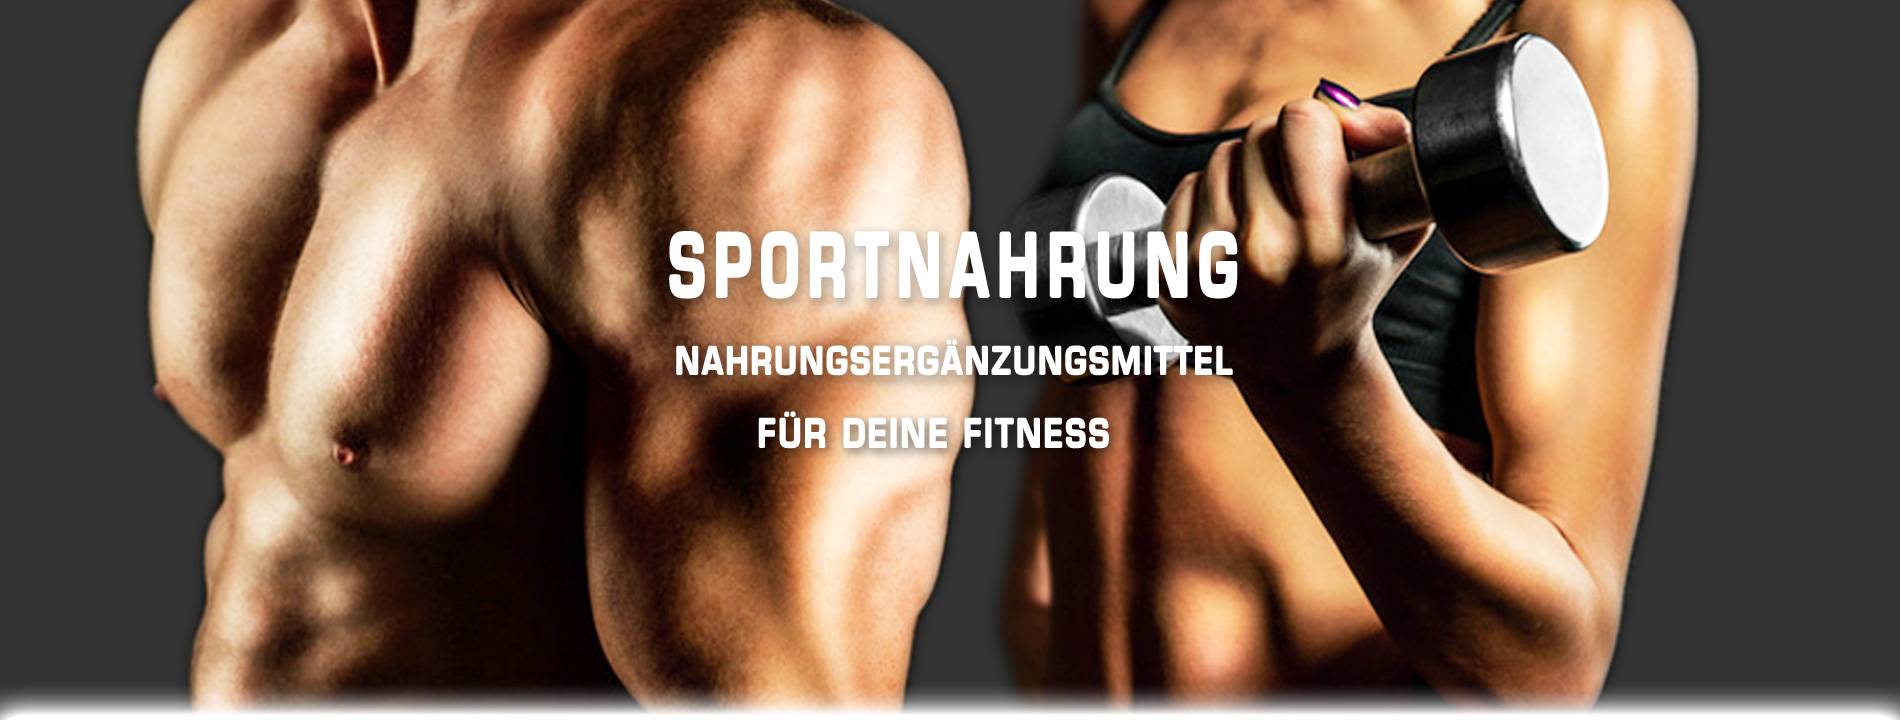 Fitness, Wellness, Gesundheit by Dominiks